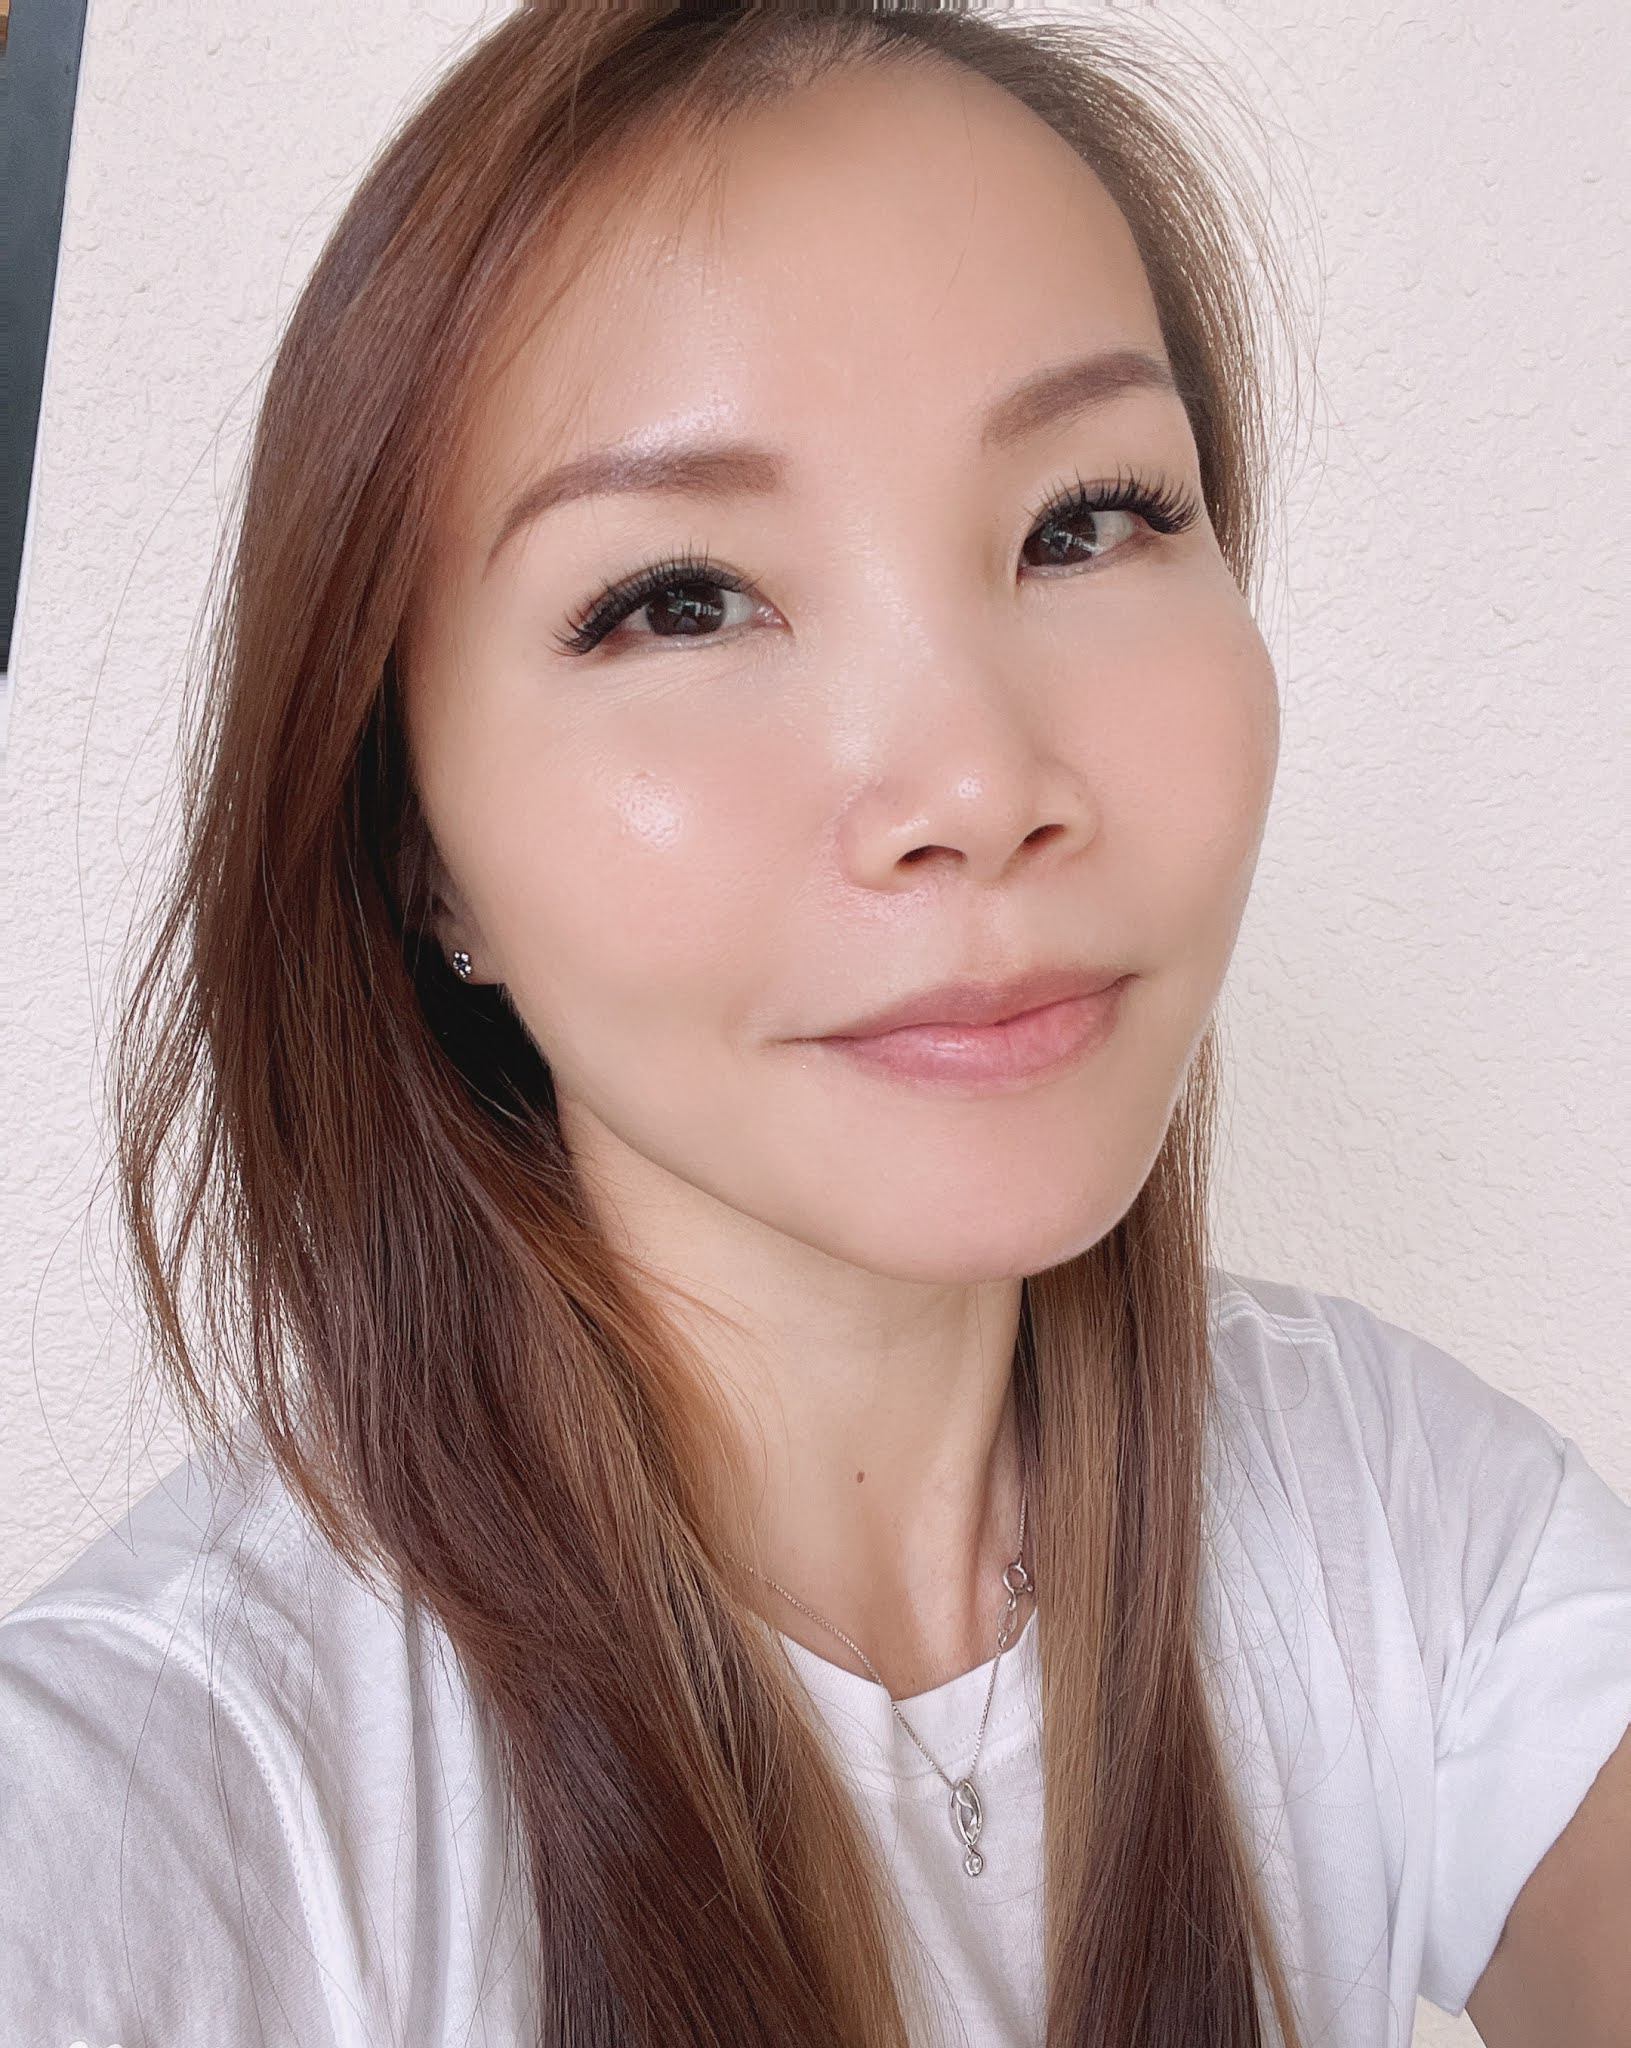 [ That Mom of Four ] The IDS (Innovative Dermatological Solutions) Journey - Third Visit